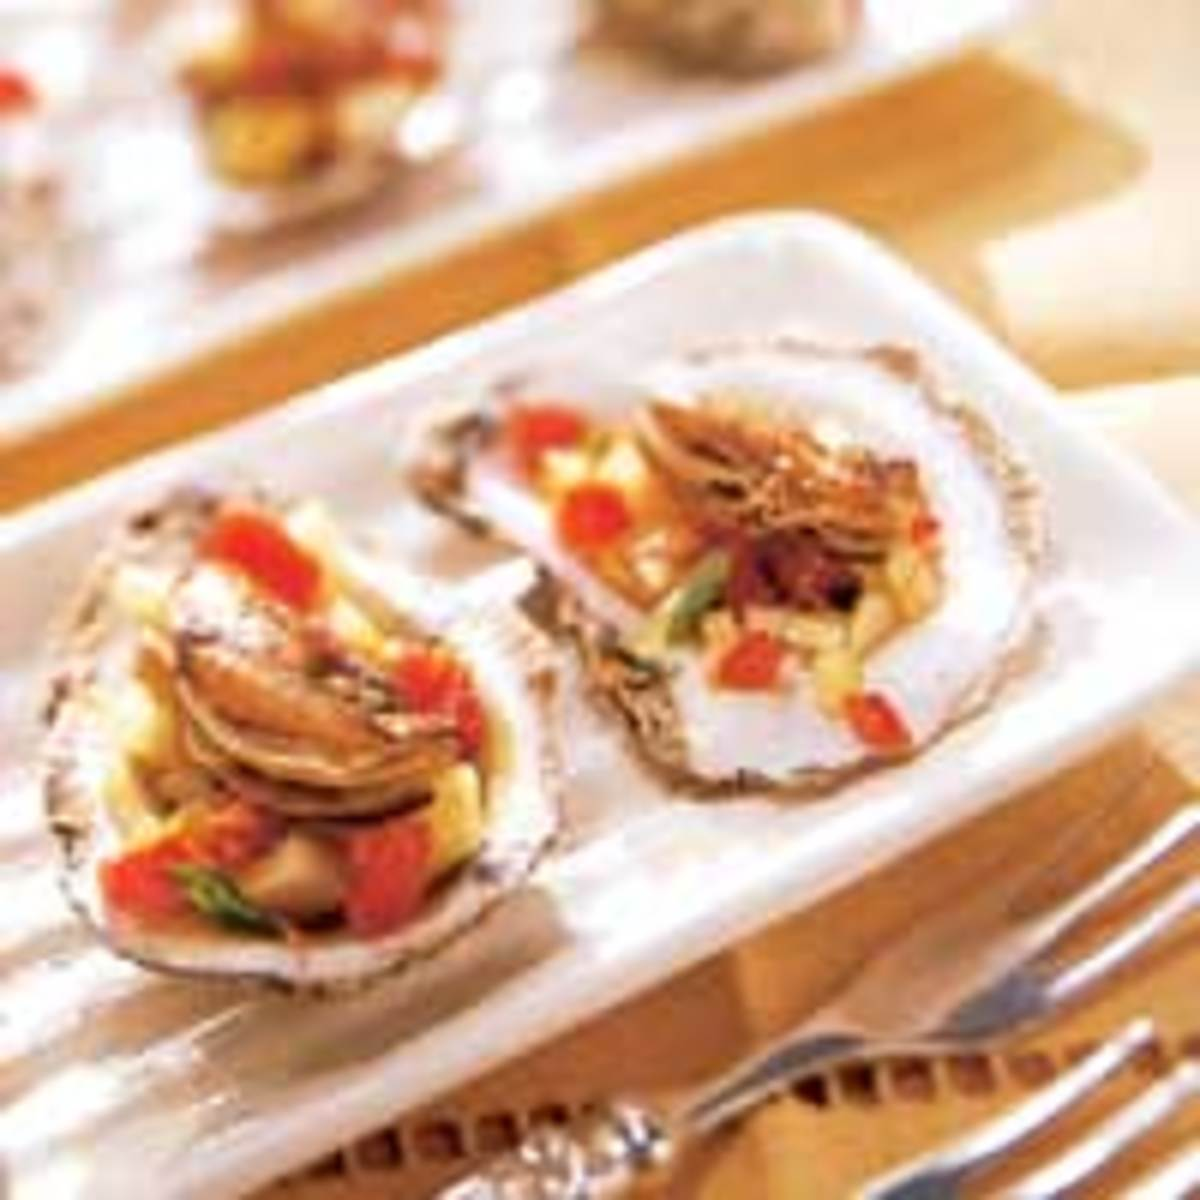 Oysters contain high amounts of iron.